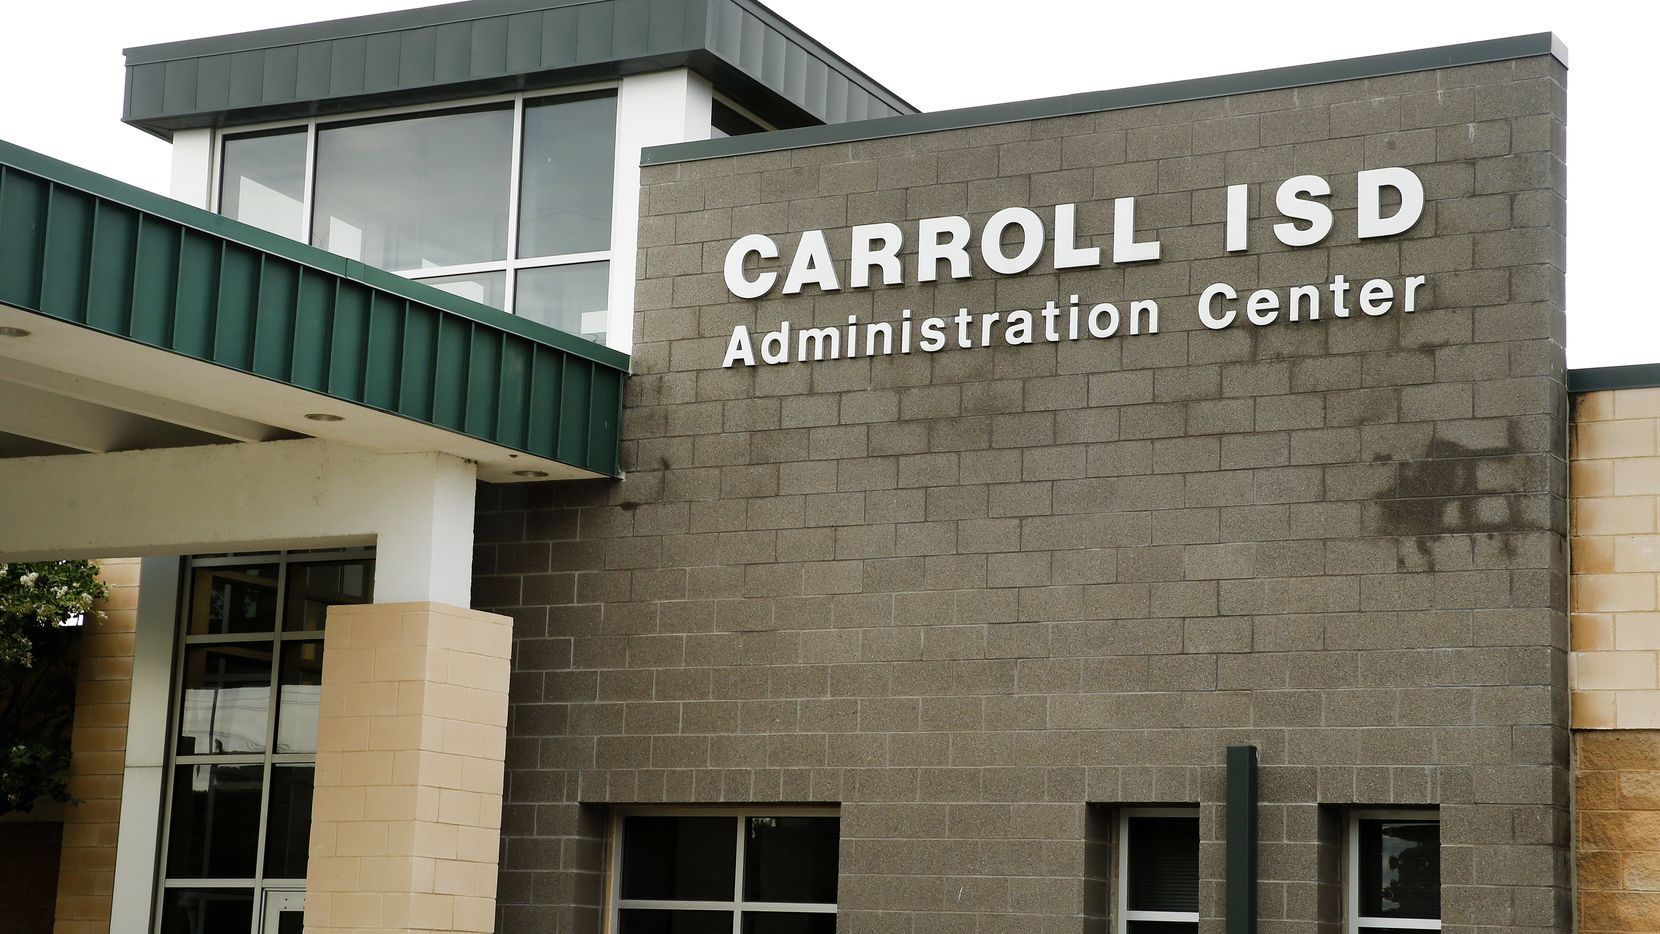 An exterior view of the Carroll ISD Administration Center in Southlake, Texas, Tuesday, June 23, 2020. (Tom Fox/The Dallas Morning News)